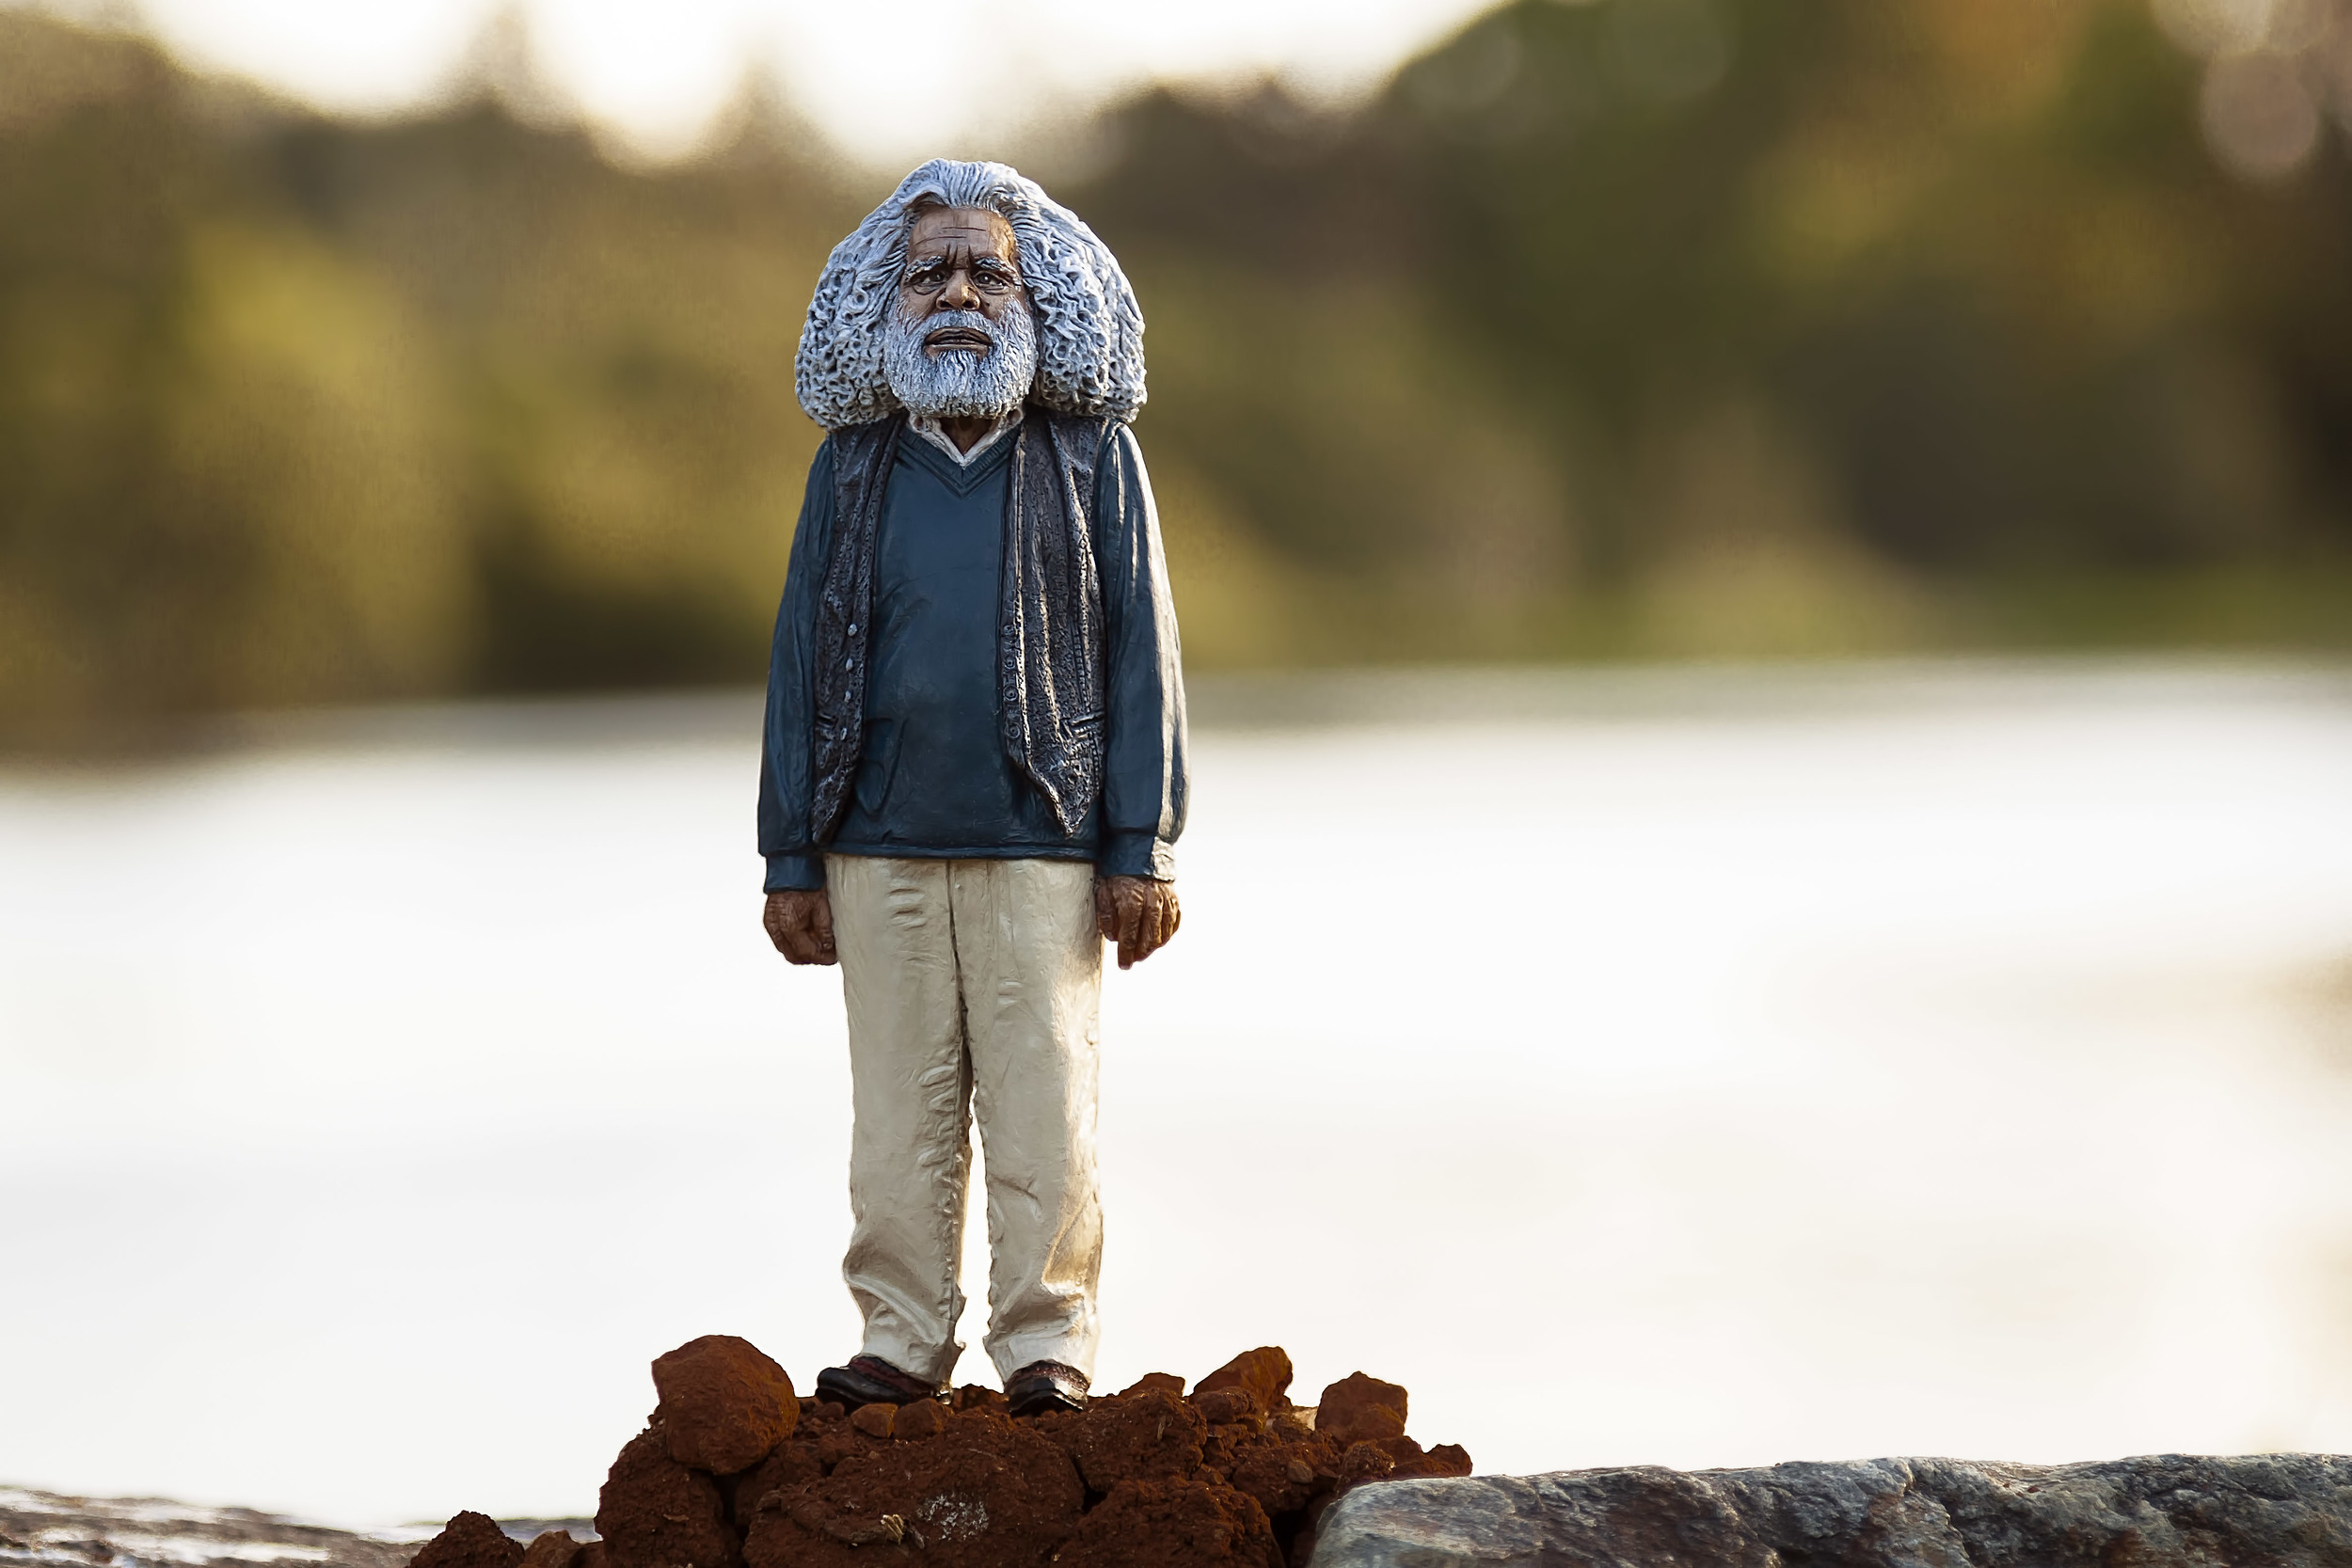 'Uncle Jack Charles, Significantly Small' 2013